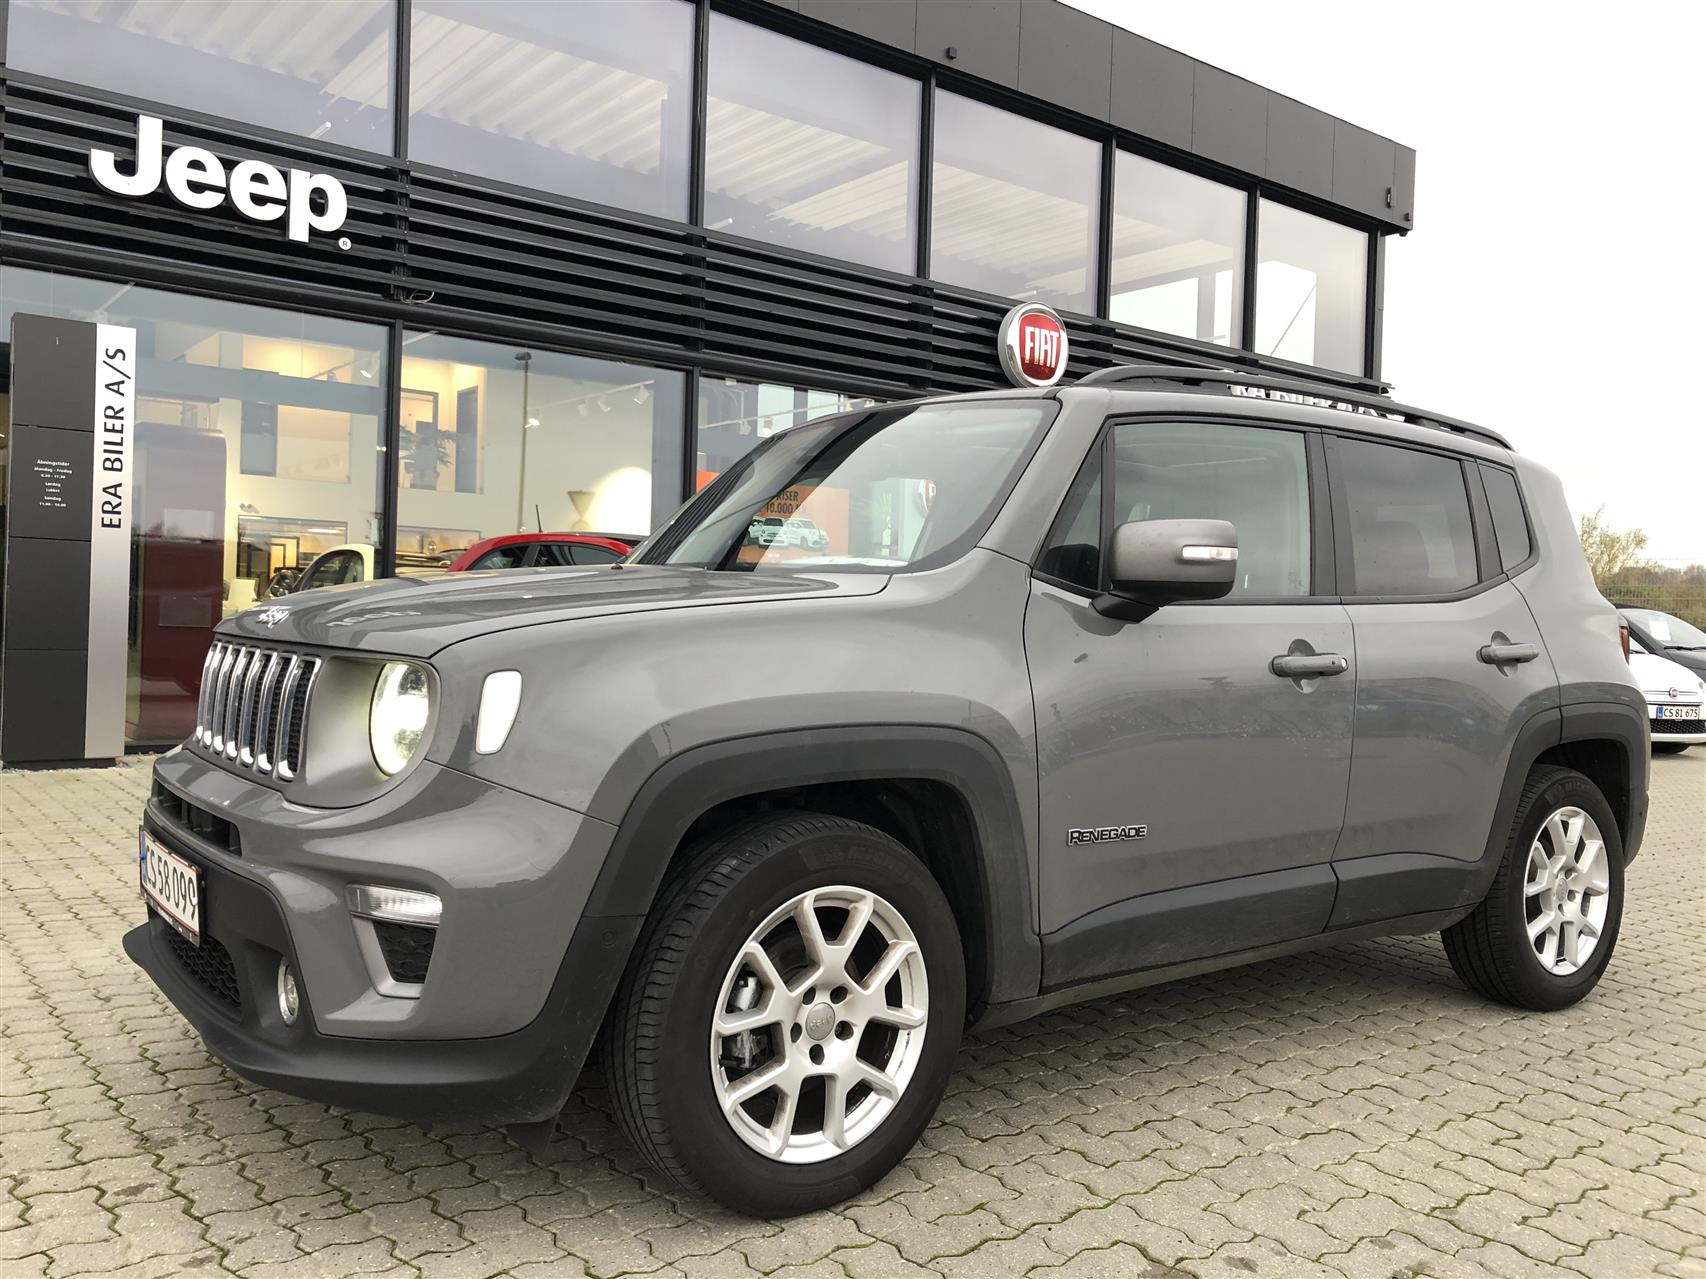 Billede af Jeep Renegade 1,6 MJT Limited First Edition DCT 120HK 5d 6g Aut.